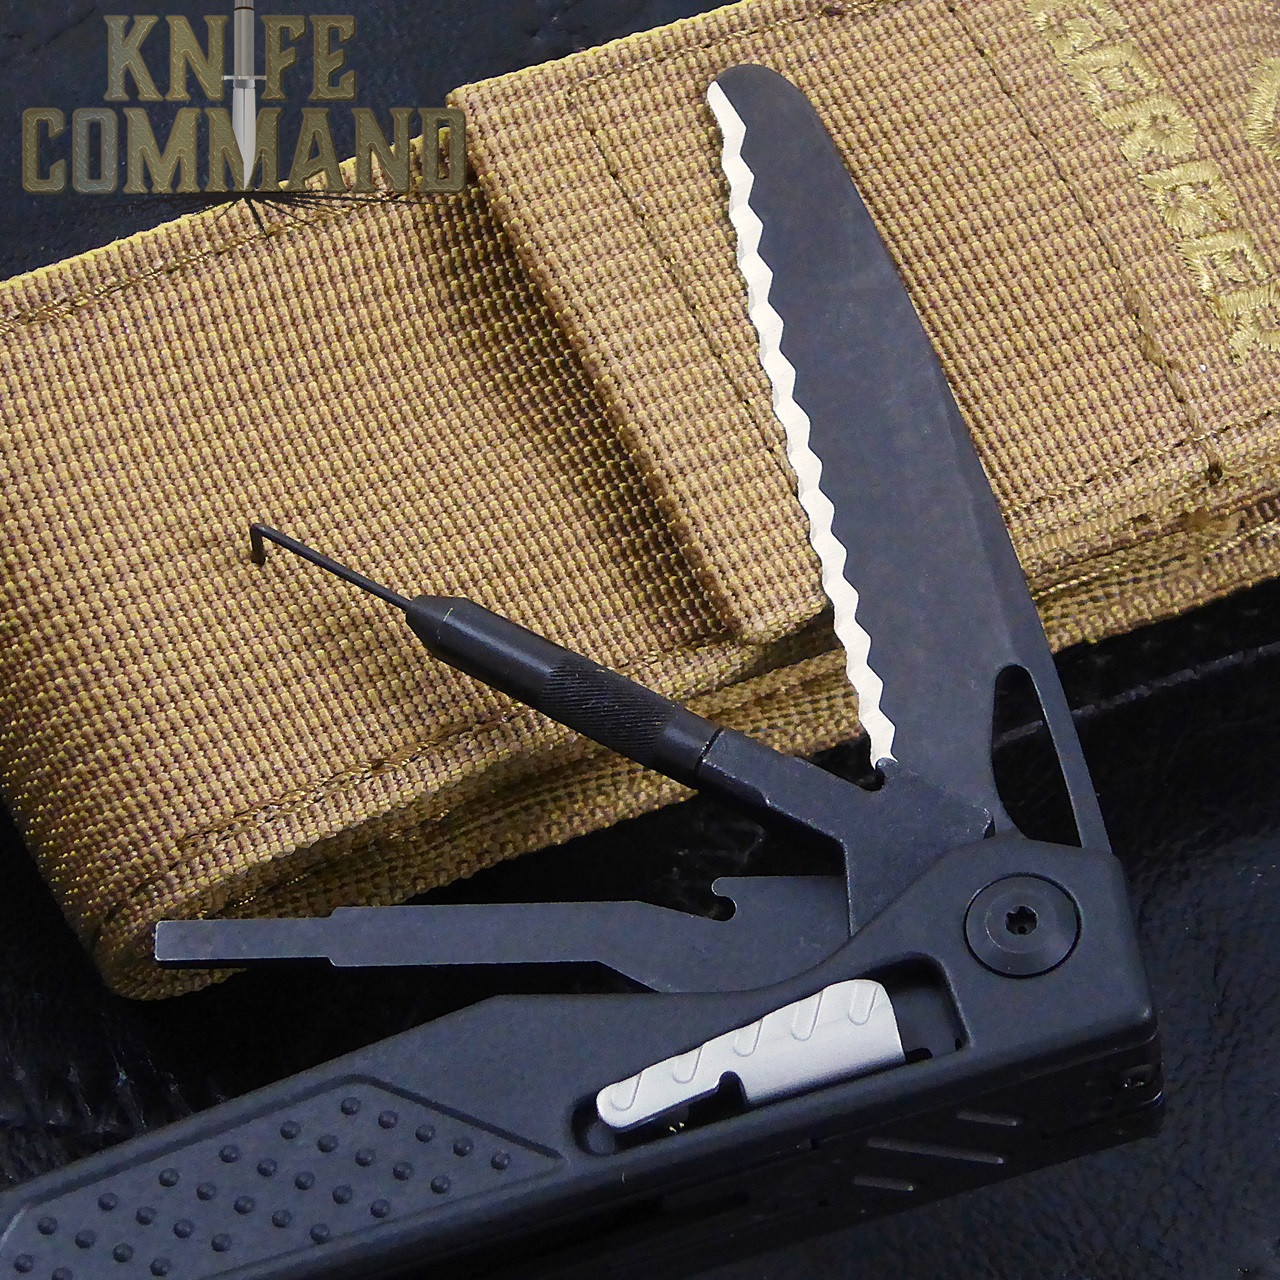 Gerber MP1-AR Weapons Multi-Tool Butterfly Opening Multi-Tool.  Serrated blade, pin punch for take-down pins, dental style carbon pick for cleaning the bolt's ejector area and other hard-to-reach parts of the weapon.